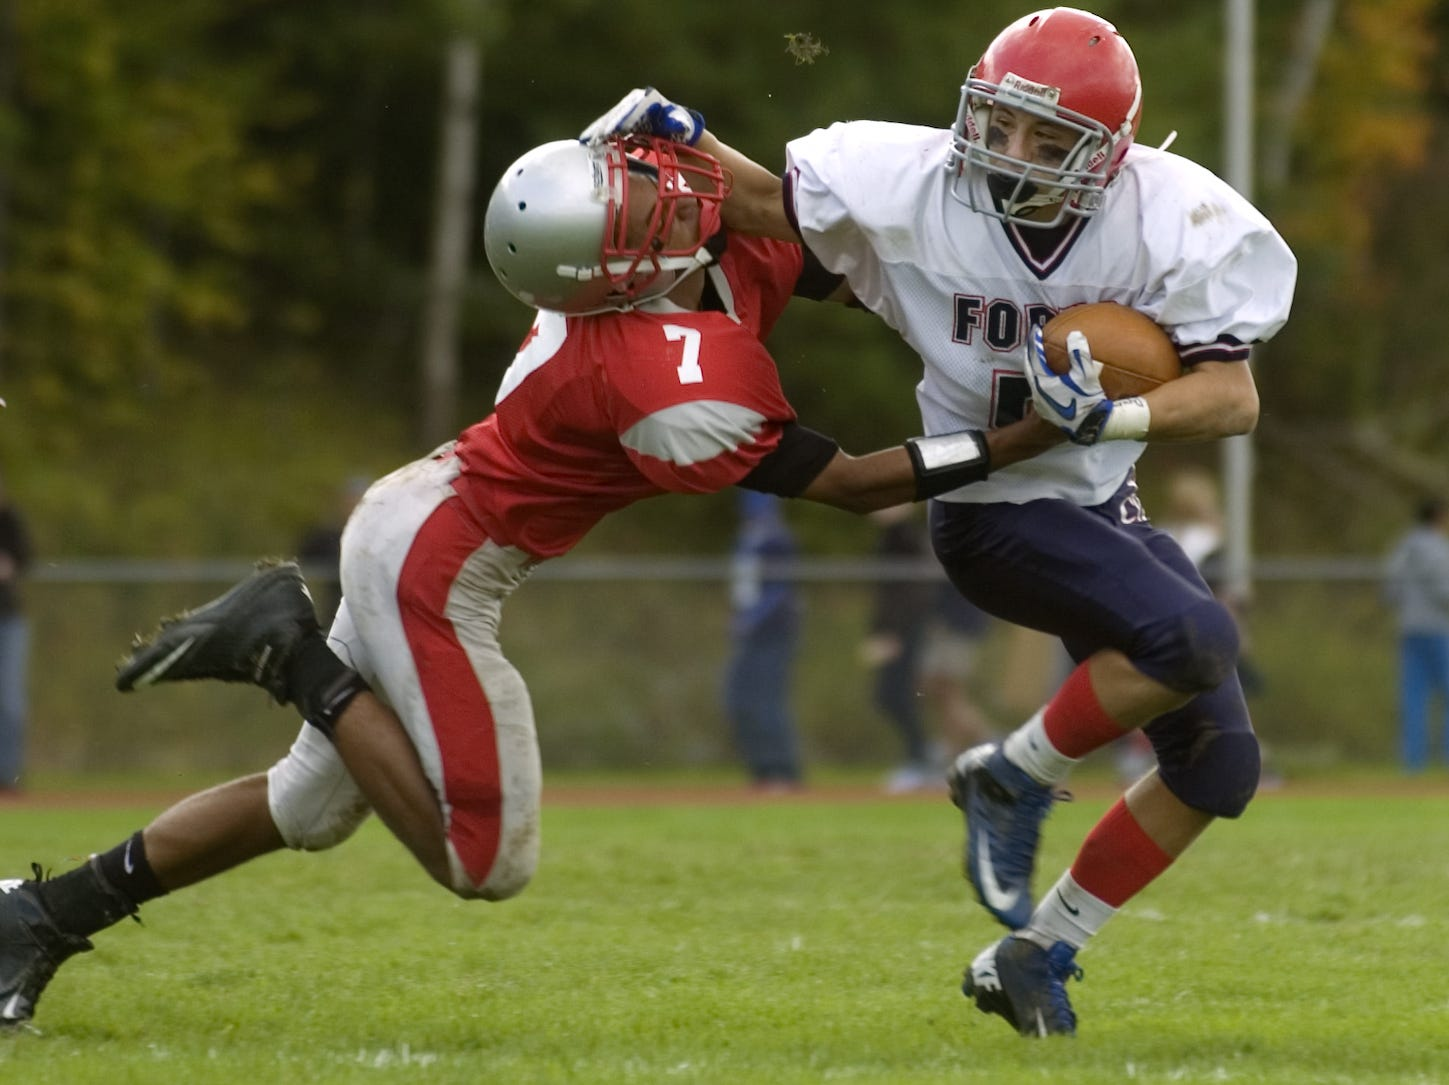 From 2012: Chenango Valley's Anthony Miller tackles Chenango Forks' Jake Green in the first half Saturday at CV. Forks won, 15-13, in two overtimes.